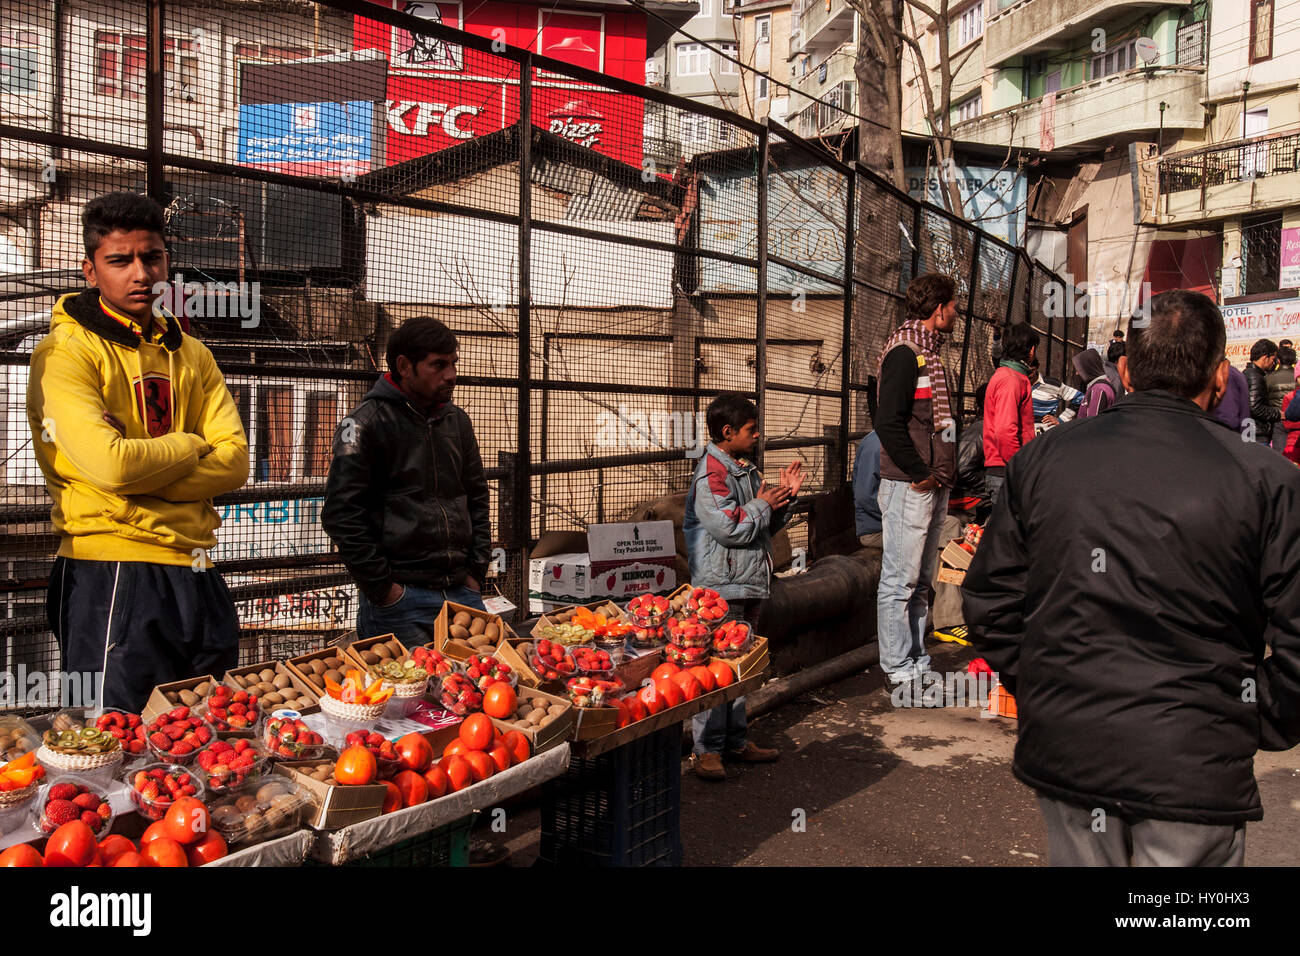 Fruit vendors, shimla, himachal pradesh, india, asia - Stock Image